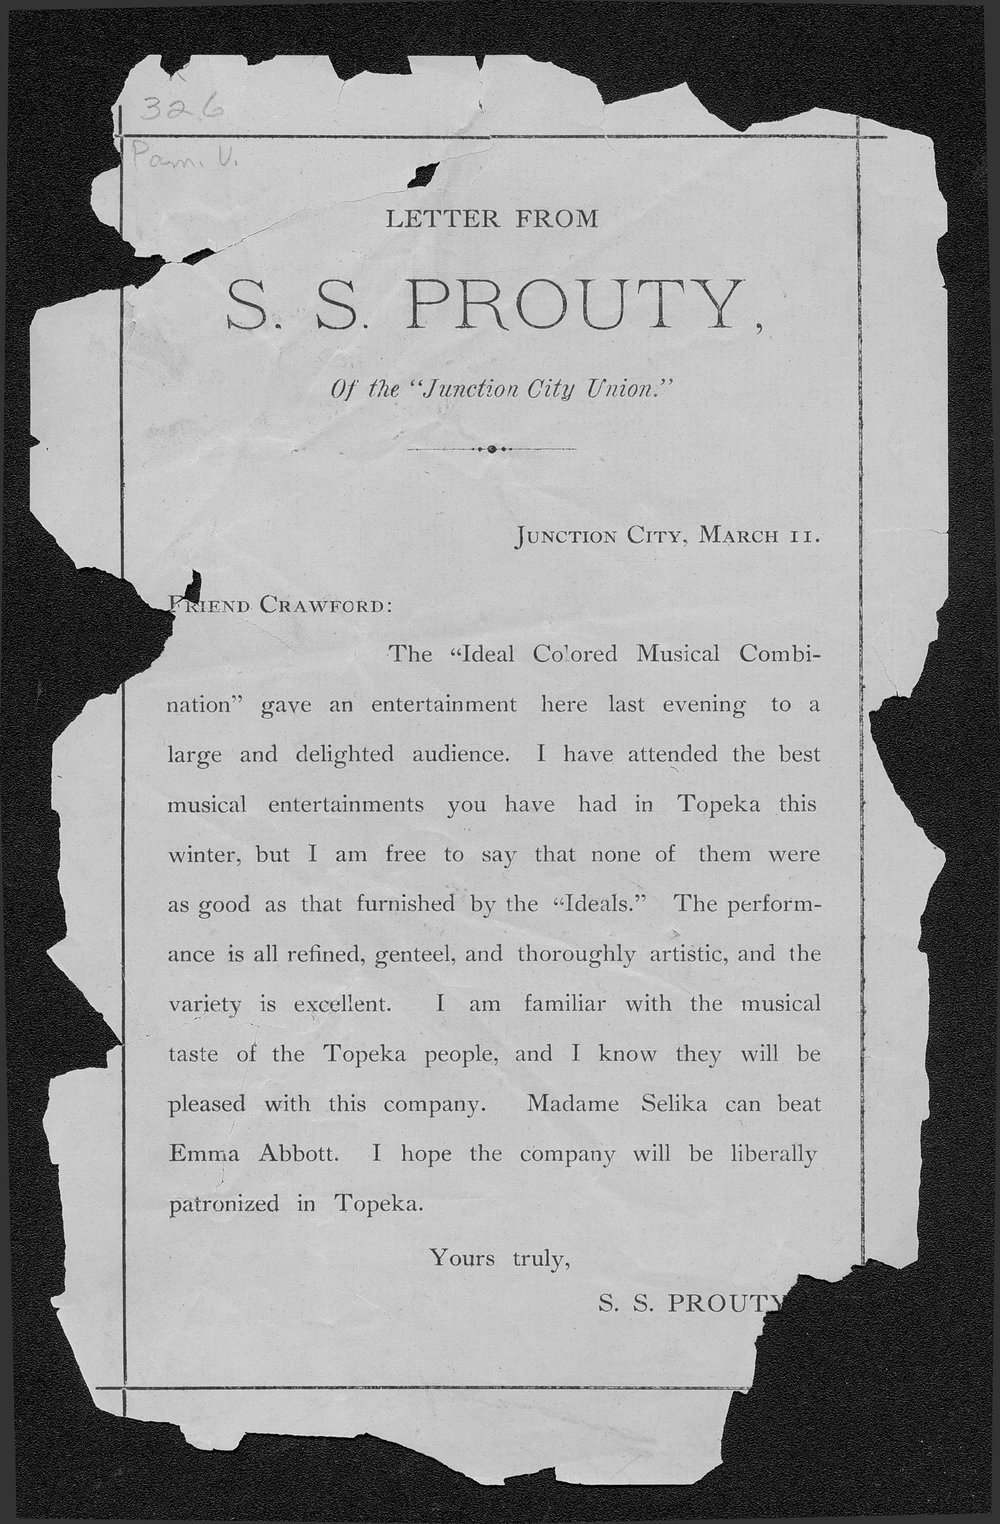 Letter from S.S. Prouty to Crawford